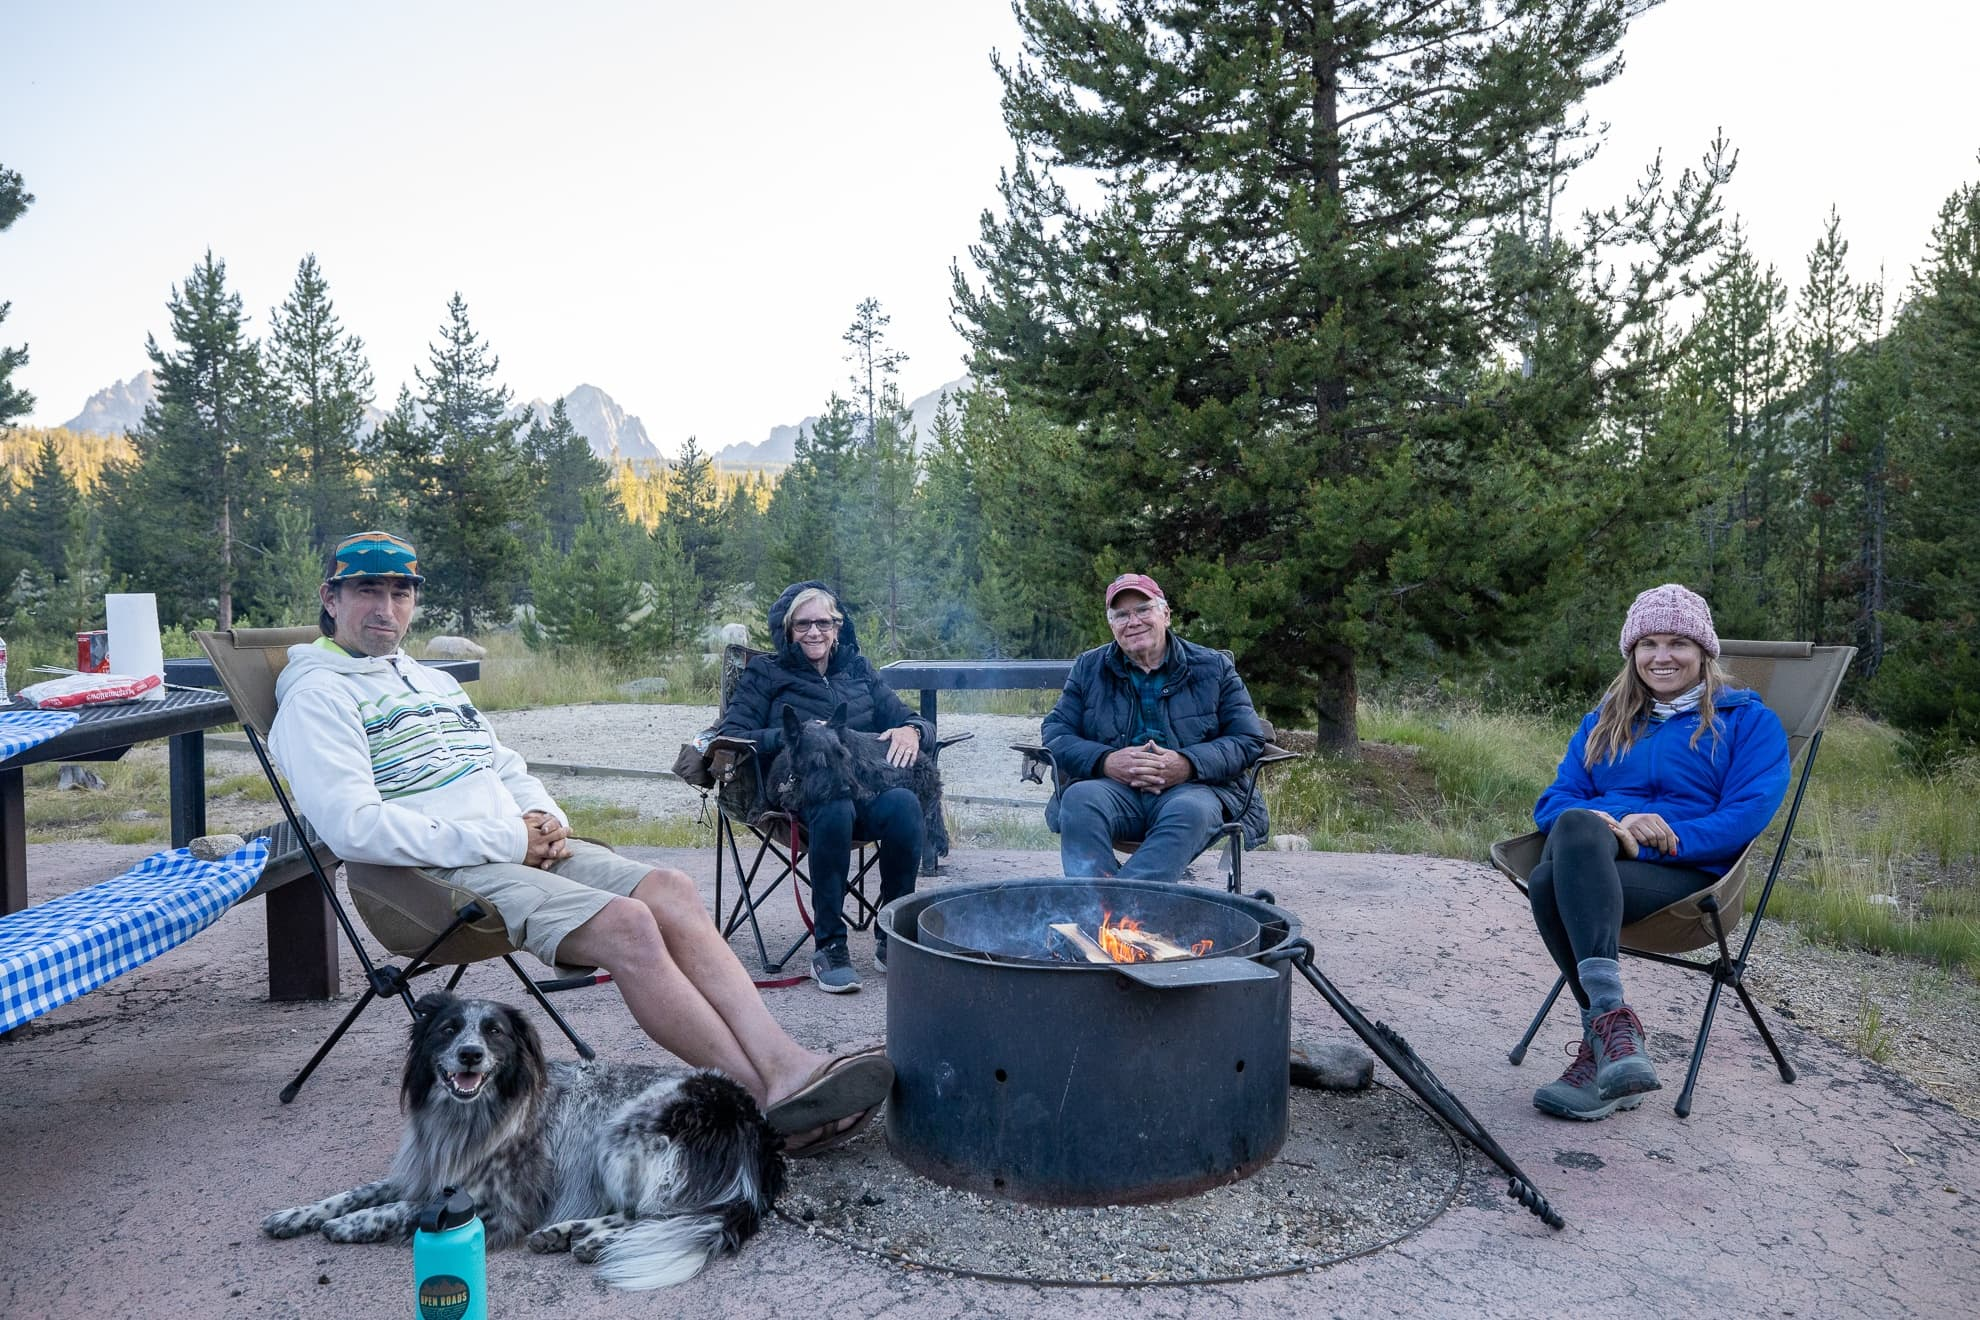 Here are the best camp chairs of 2021 including the top lightweight, comfortable options for camping to keep your back and tush happy.